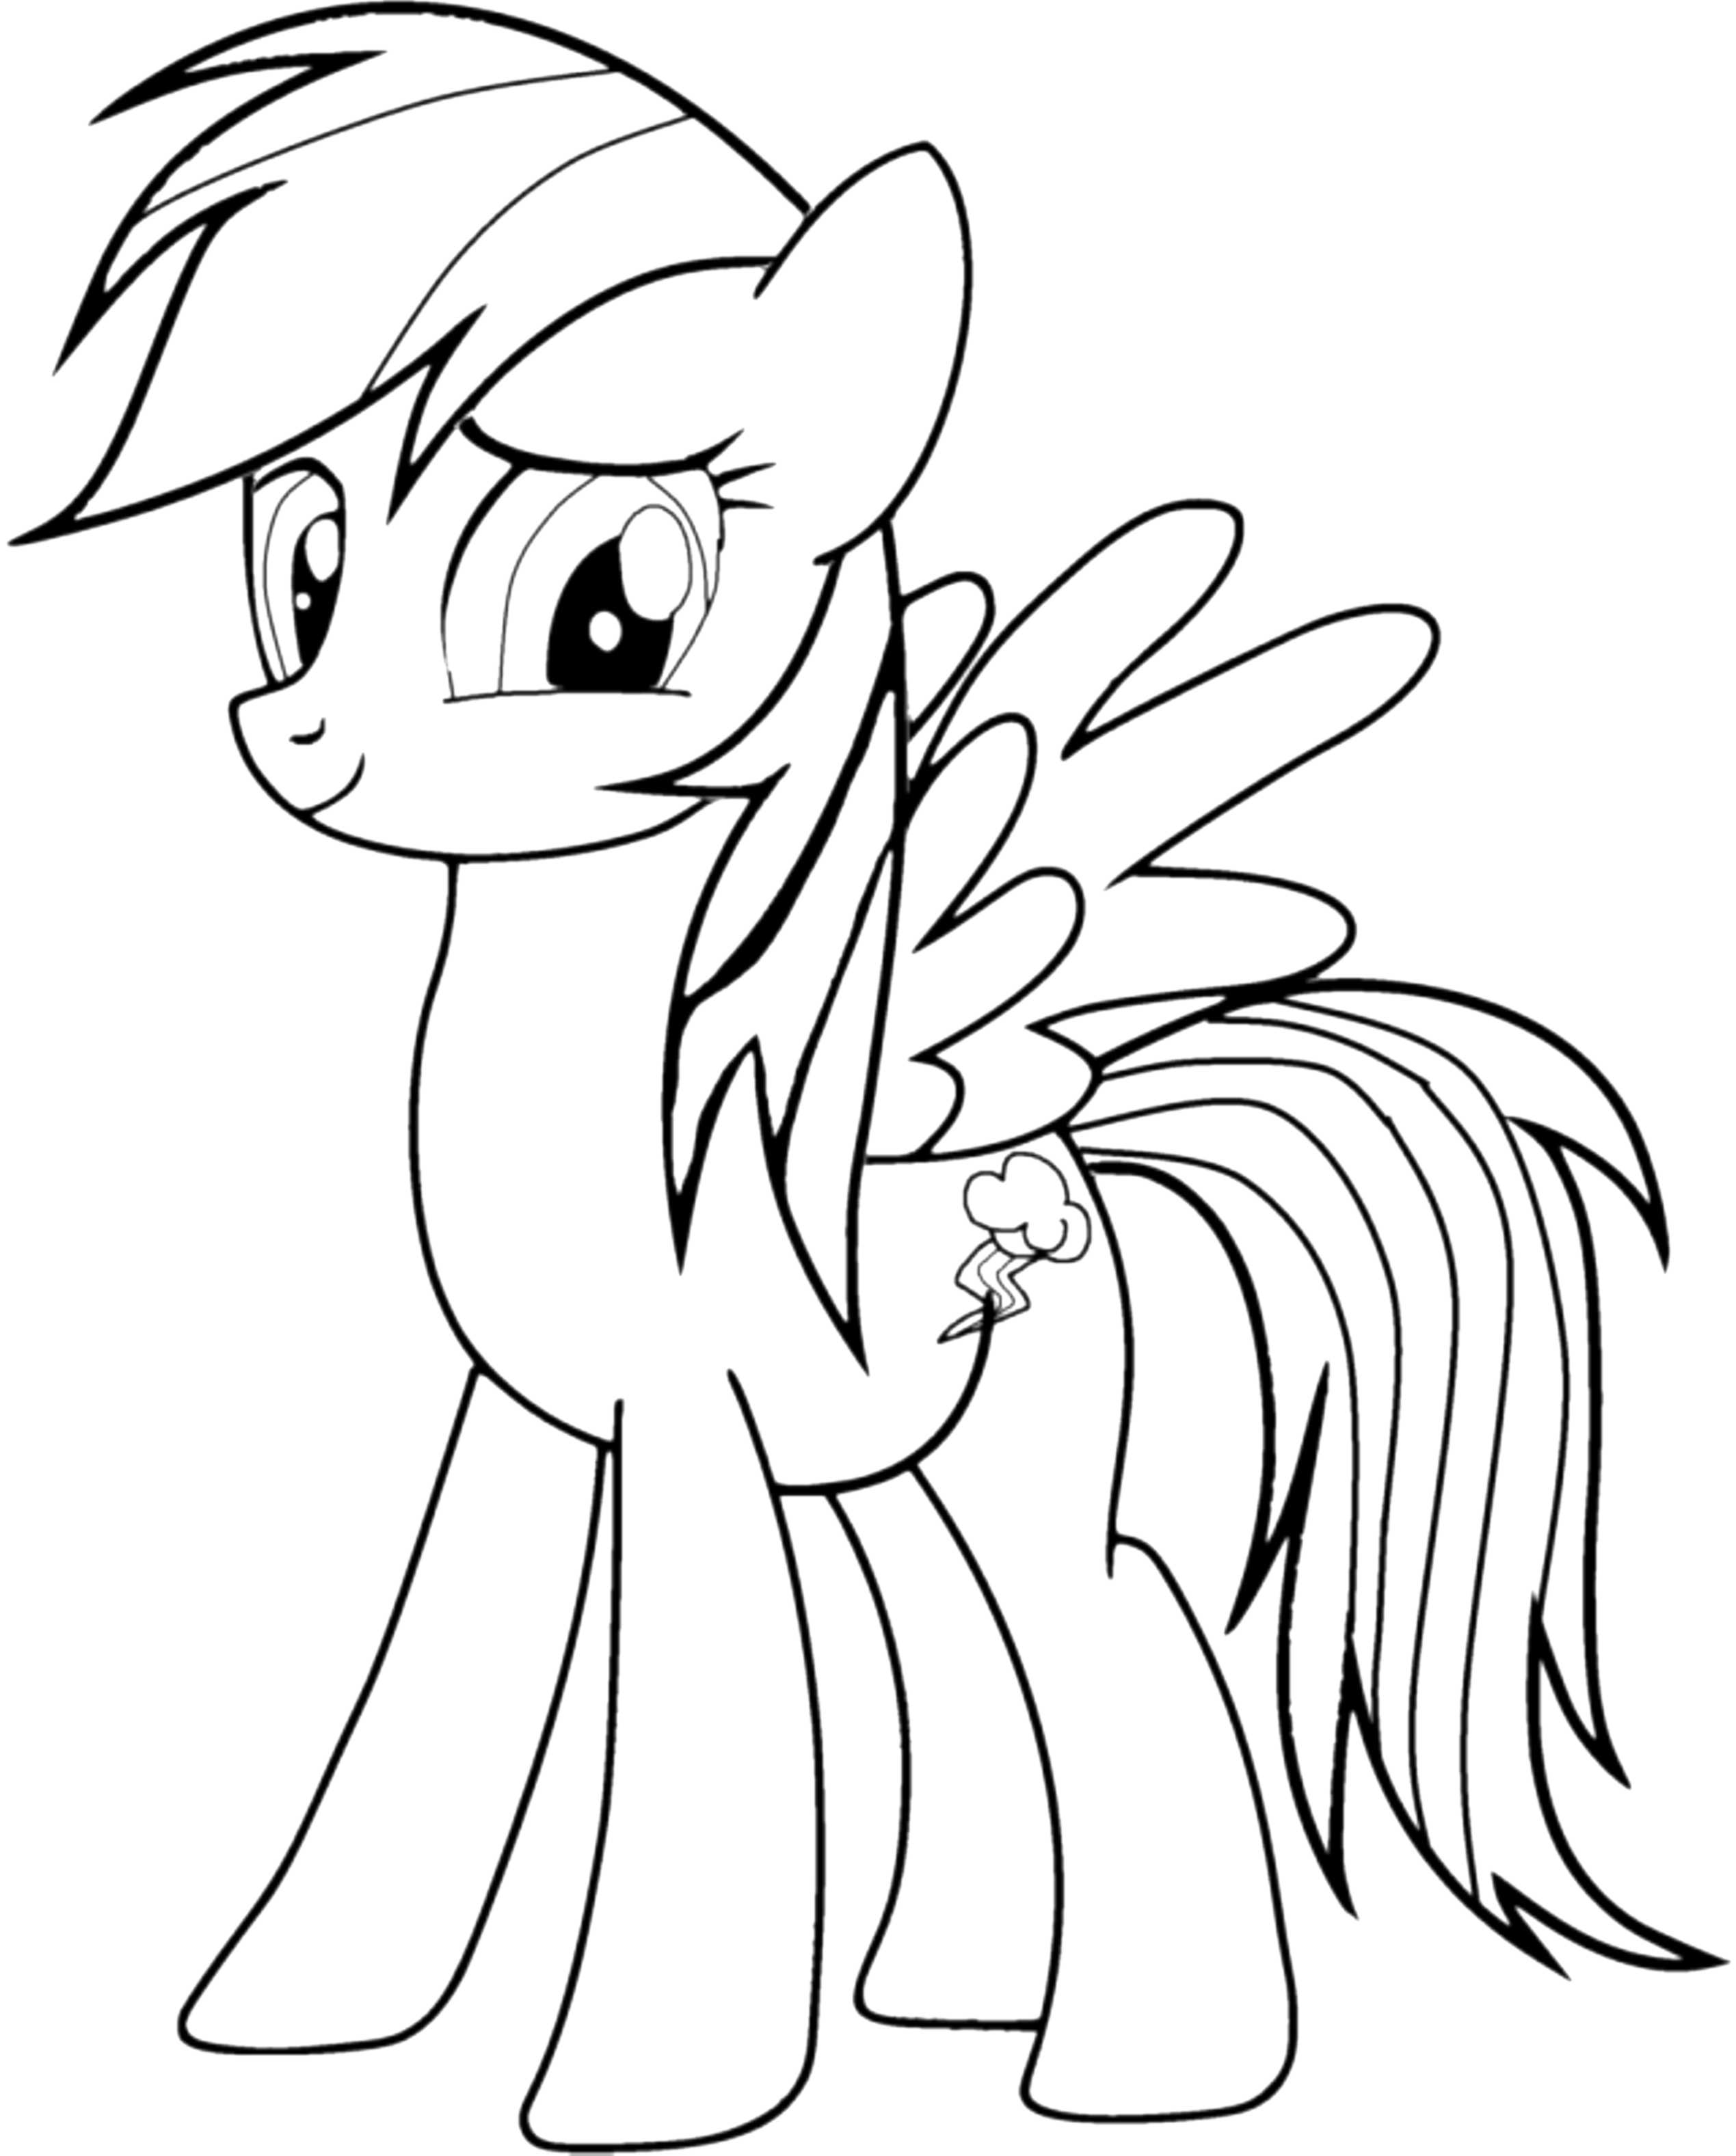 my little pony coloring pages rainbow dash sparkle rainbow dash coloring sheets coloring pages coloring dash pony rainbow my pages little